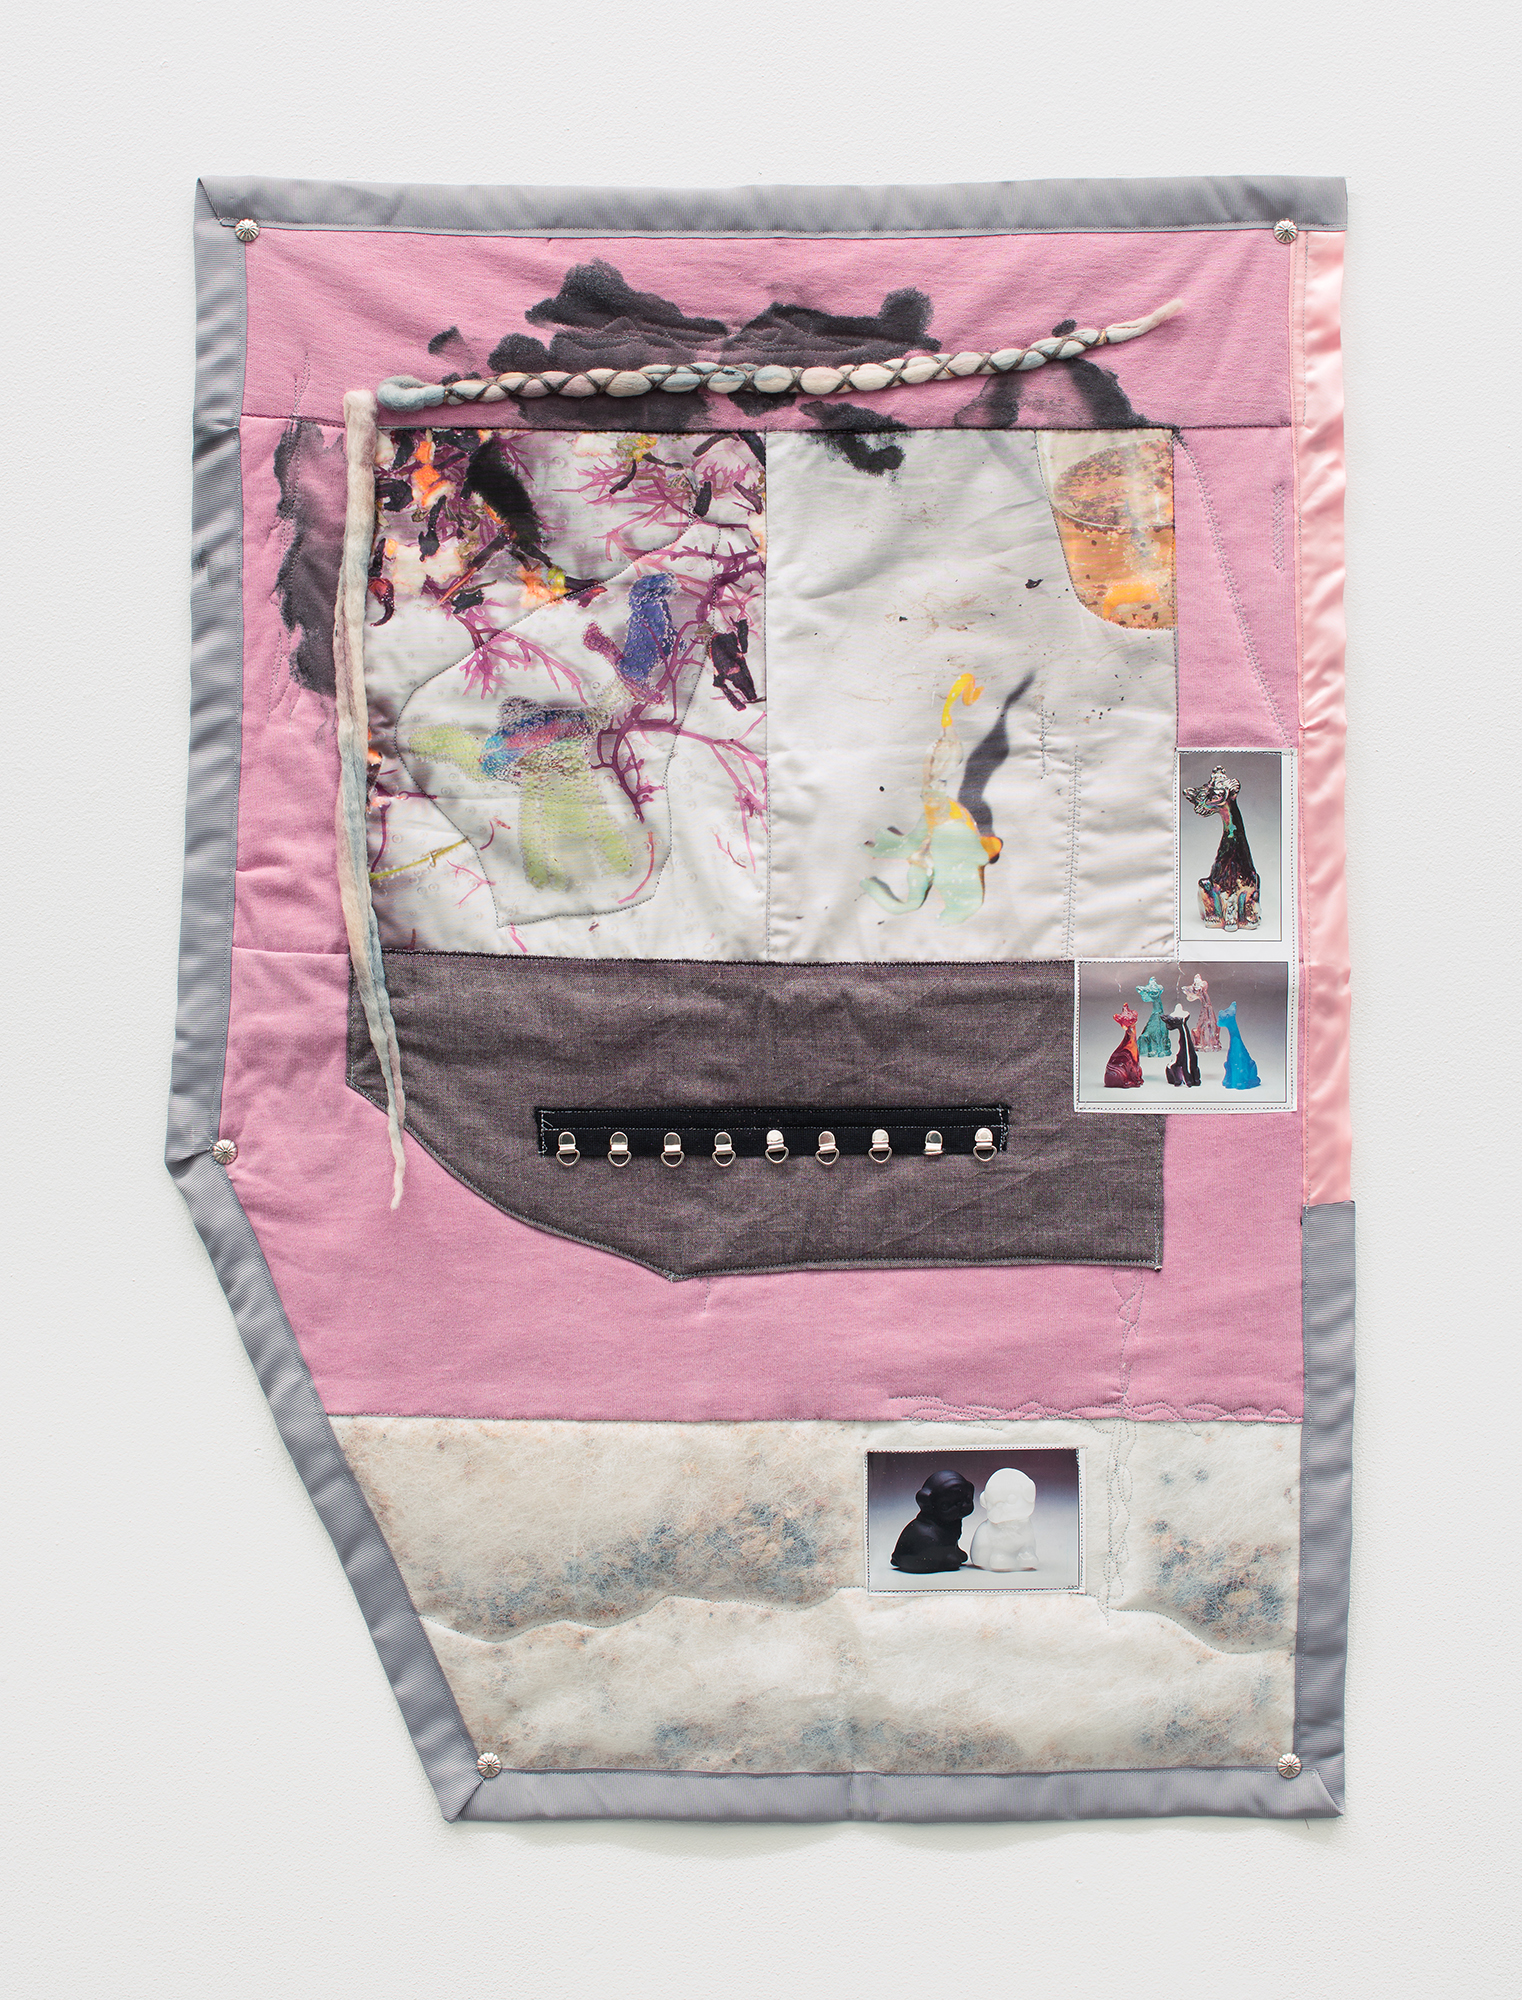 Erin Jane Nelson  RttP [Ruminant to the Palm] , 2015 Inkjet on cotton, thermodynamic jersey, various fabrics, felted wool, sheer garden liner, custom spice blend, offset photographs, ink, d-ring chain, nickel jewelry, tea balls, nylon and silk ribbon